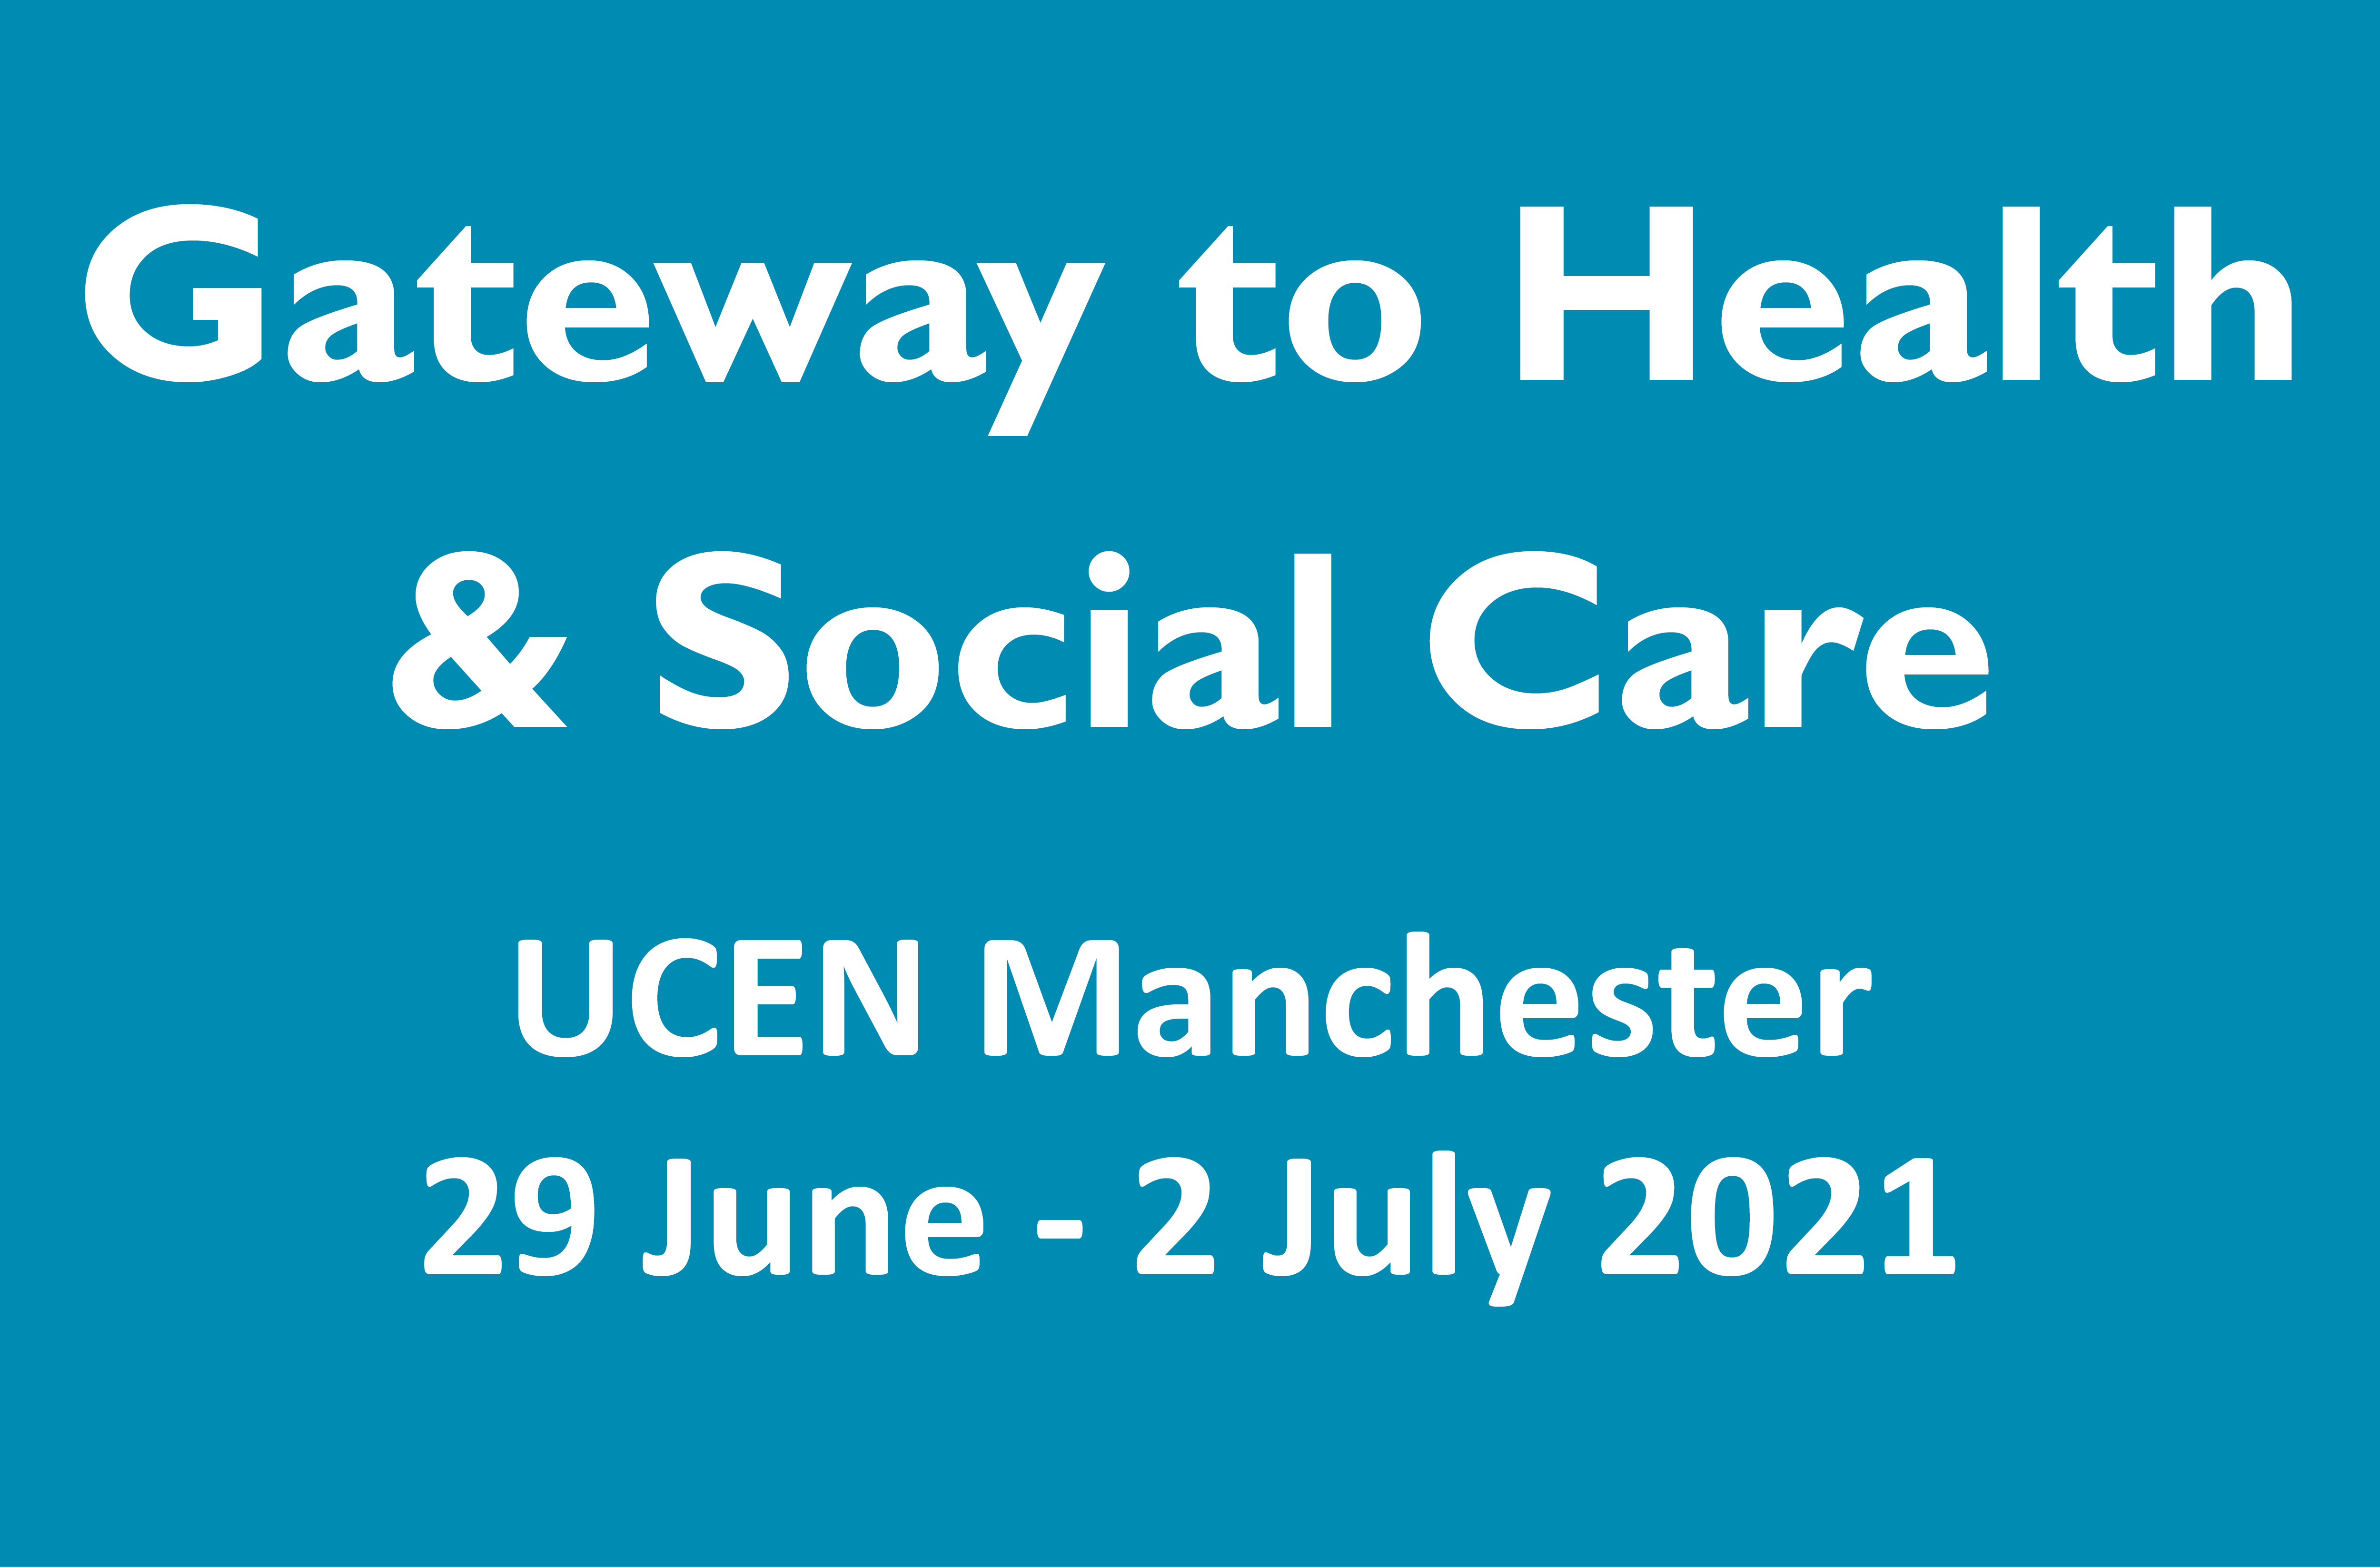 Gateway to health and social care event tile